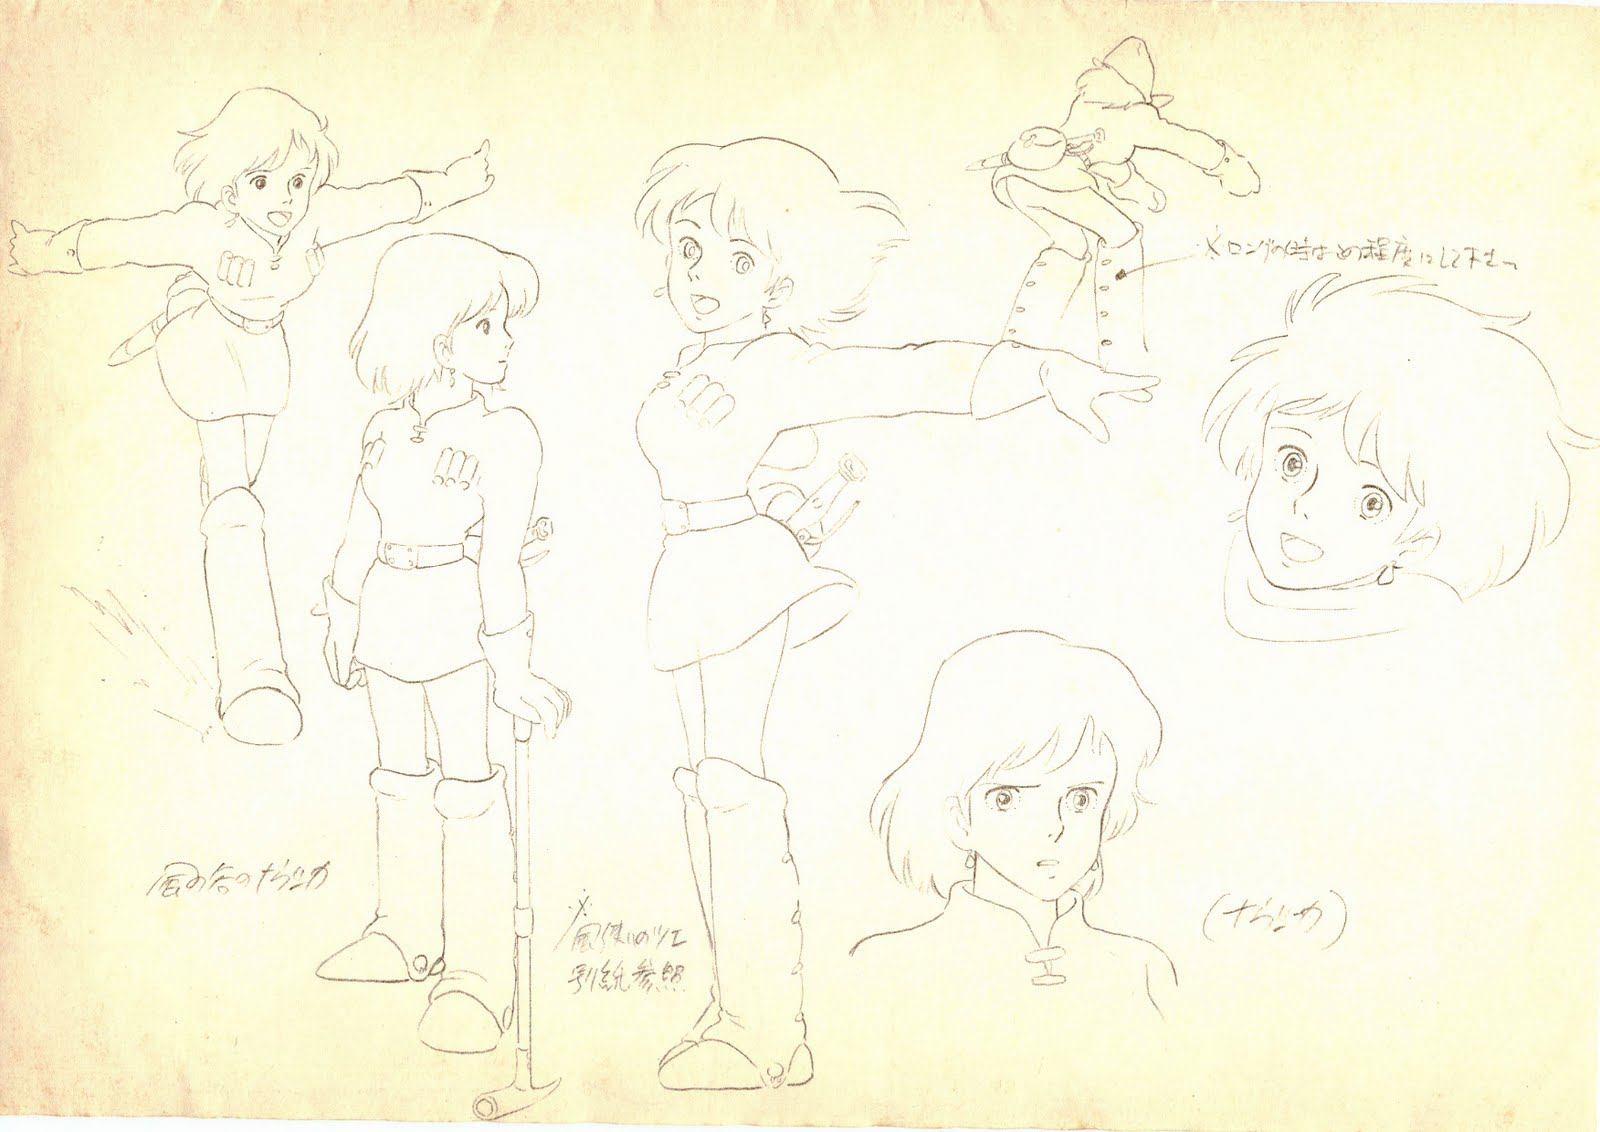 nausicaa_of_the_valley_of_the_wind_concept_art_character_01.jpg